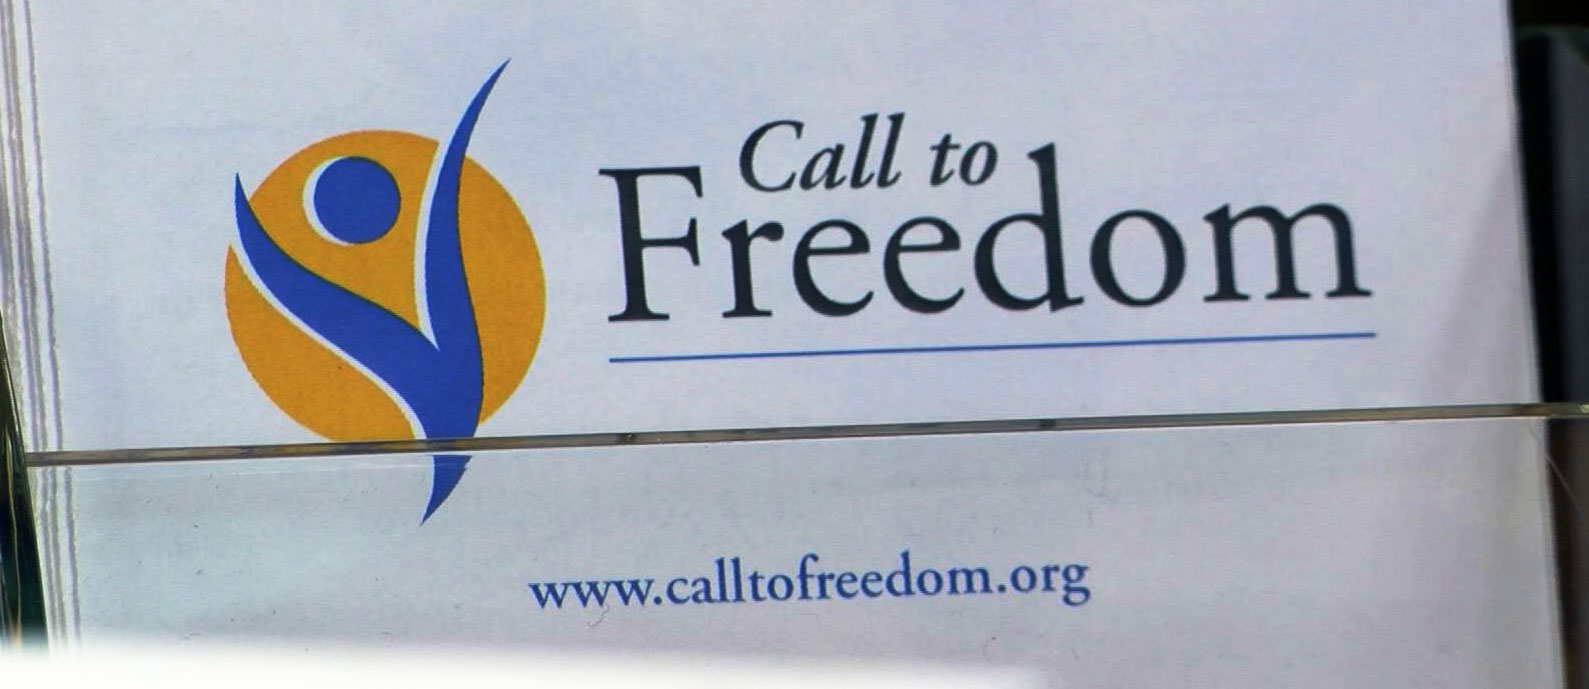 Human Trafficking Call To Freedom